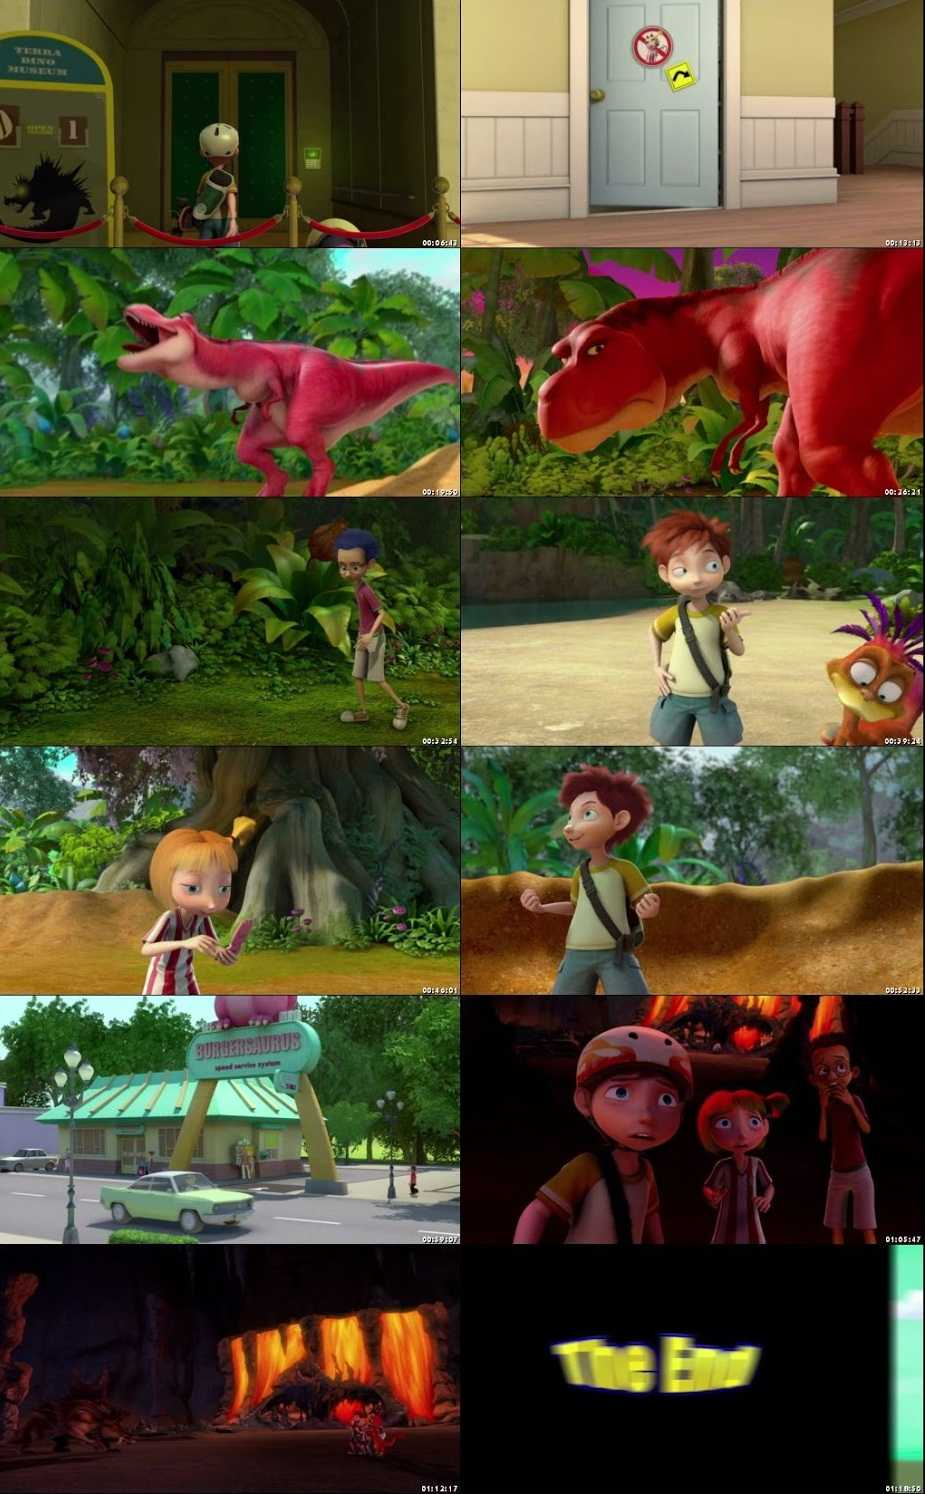 Dino Time (2012) ScreenshtsDino Time (2012) Screenshts